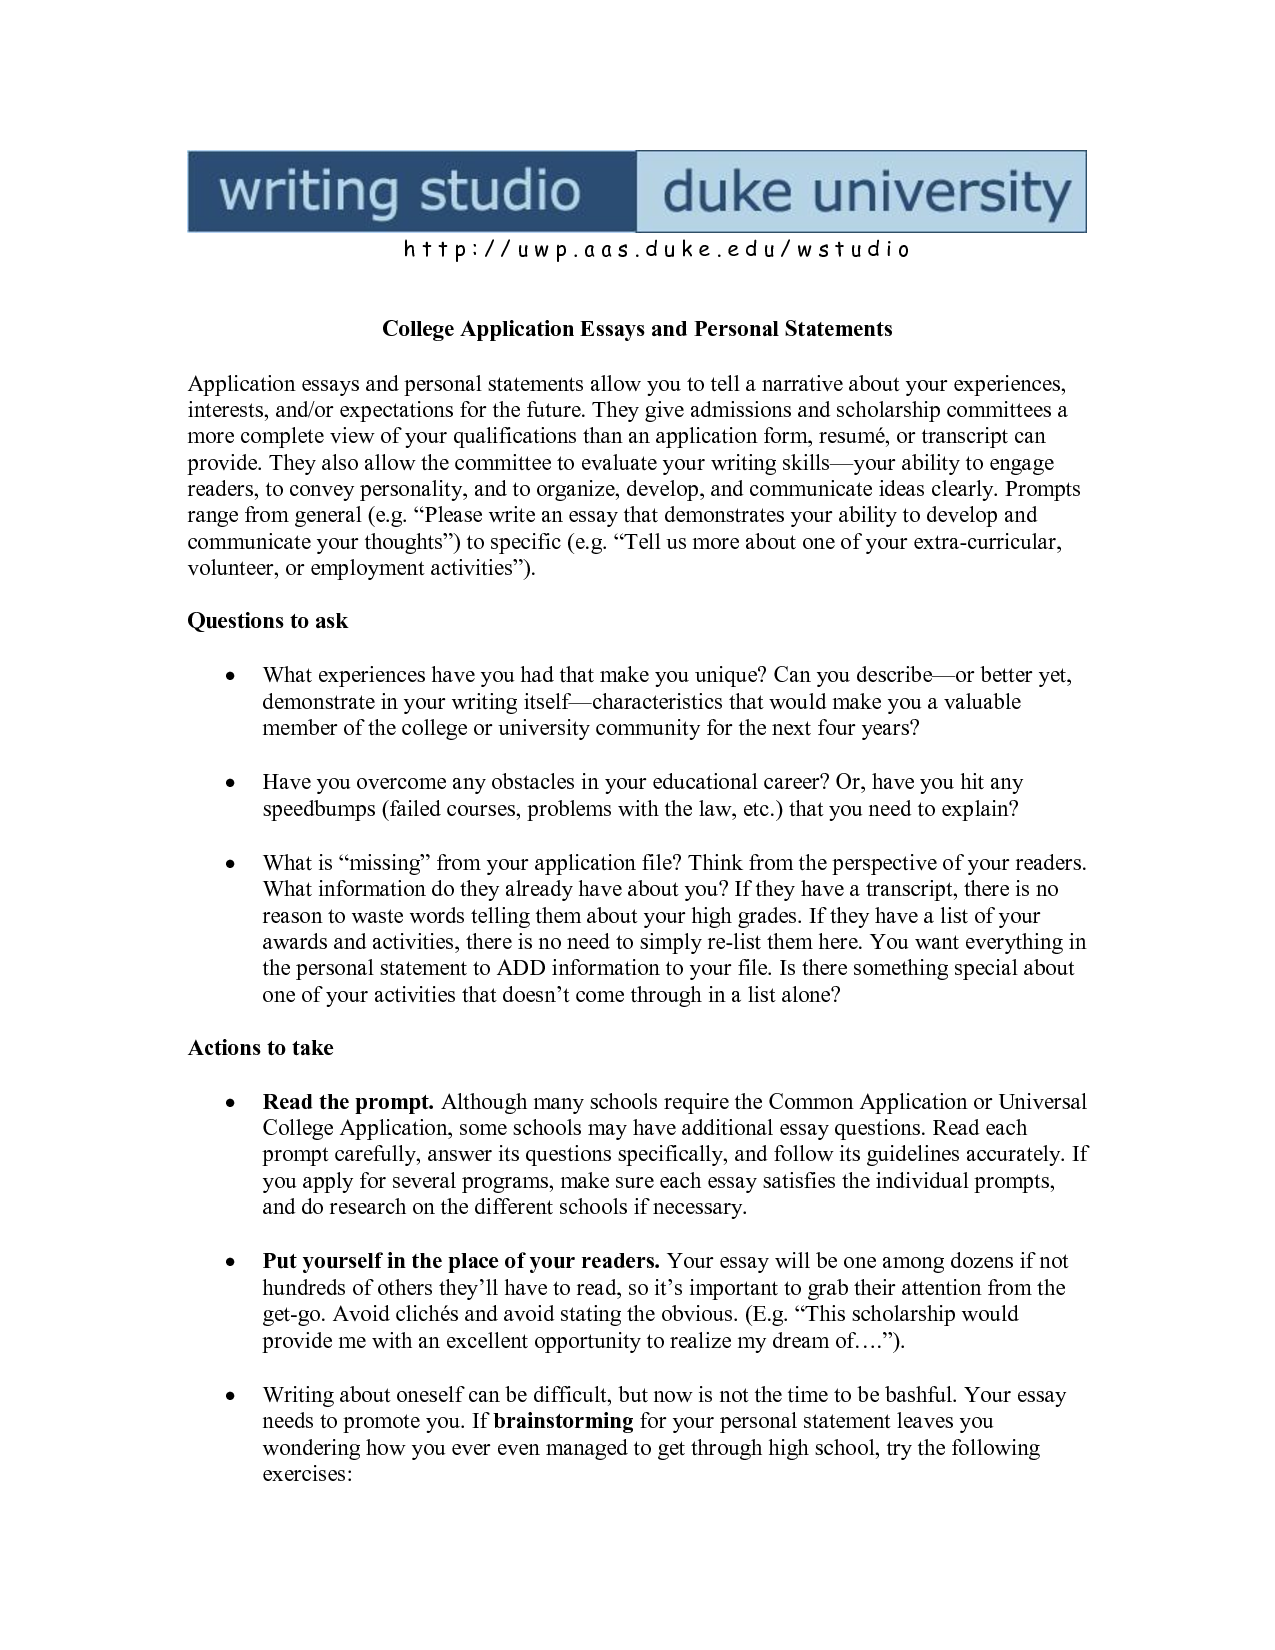 Start college essay personal statement